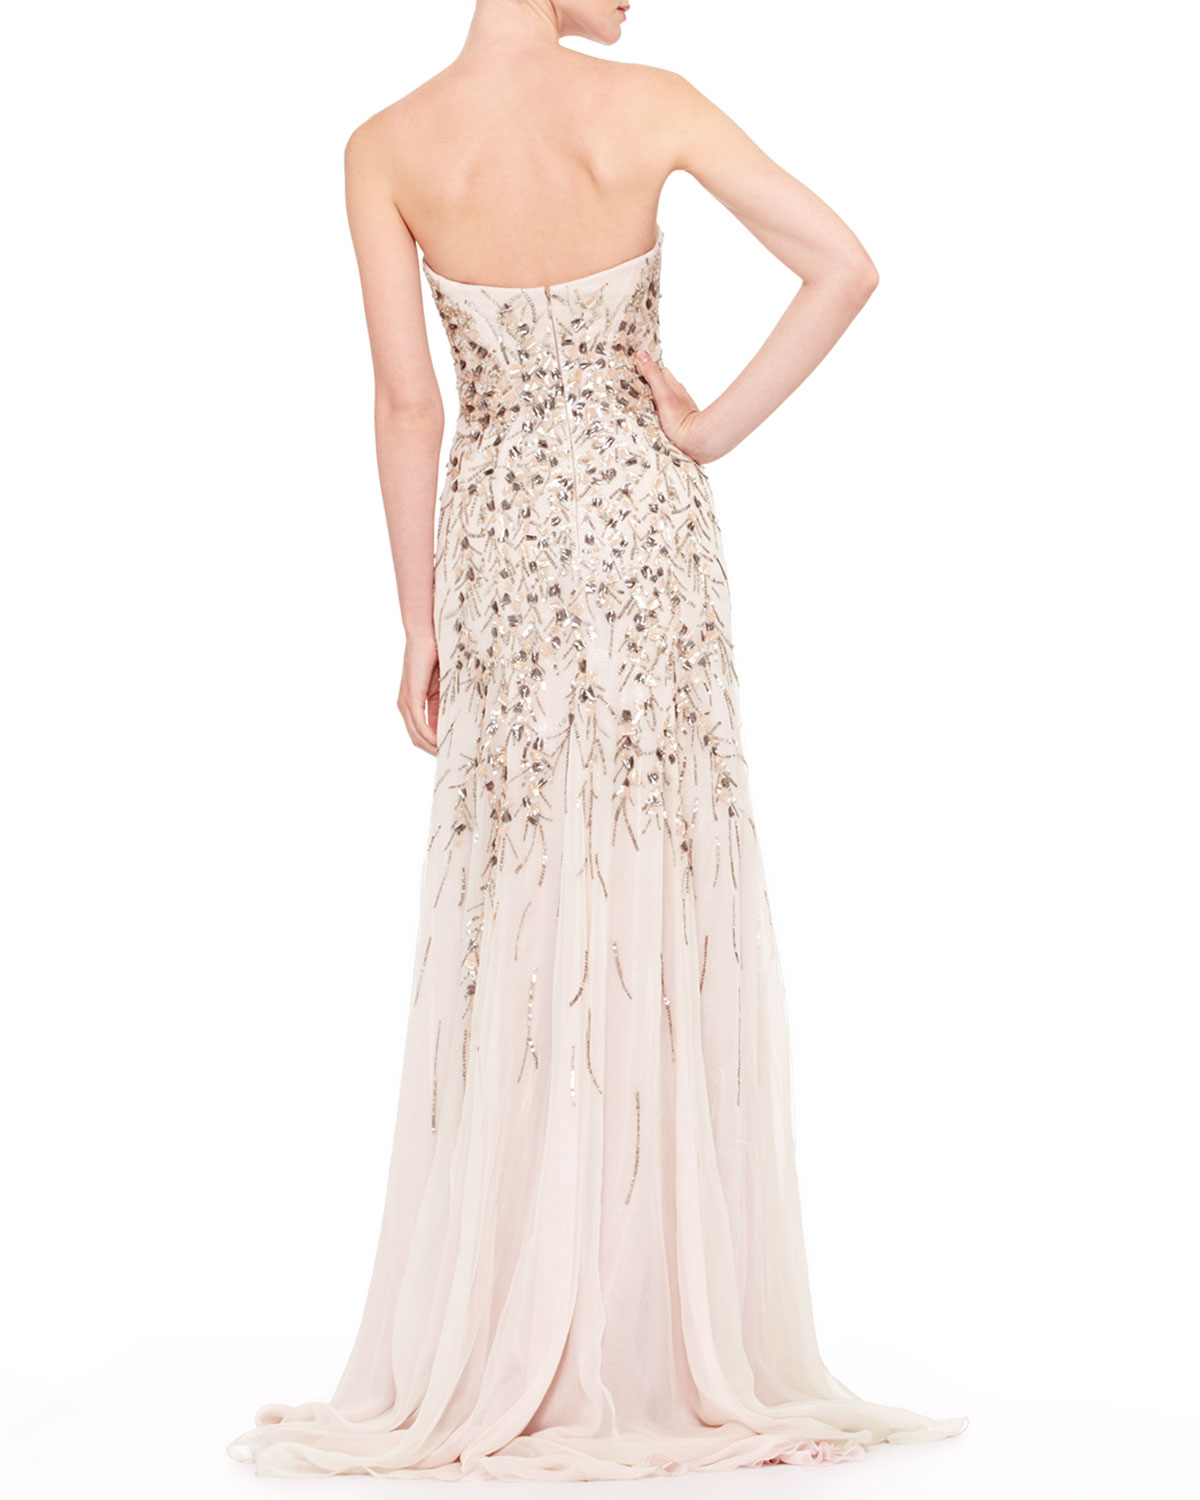 Thing moreover Carolina Herrera Strapless Beaded Chiffon Gown Light Gray Light Grey together with Thing besides Thing as well Thing. on oscar de la renta beaded earrings